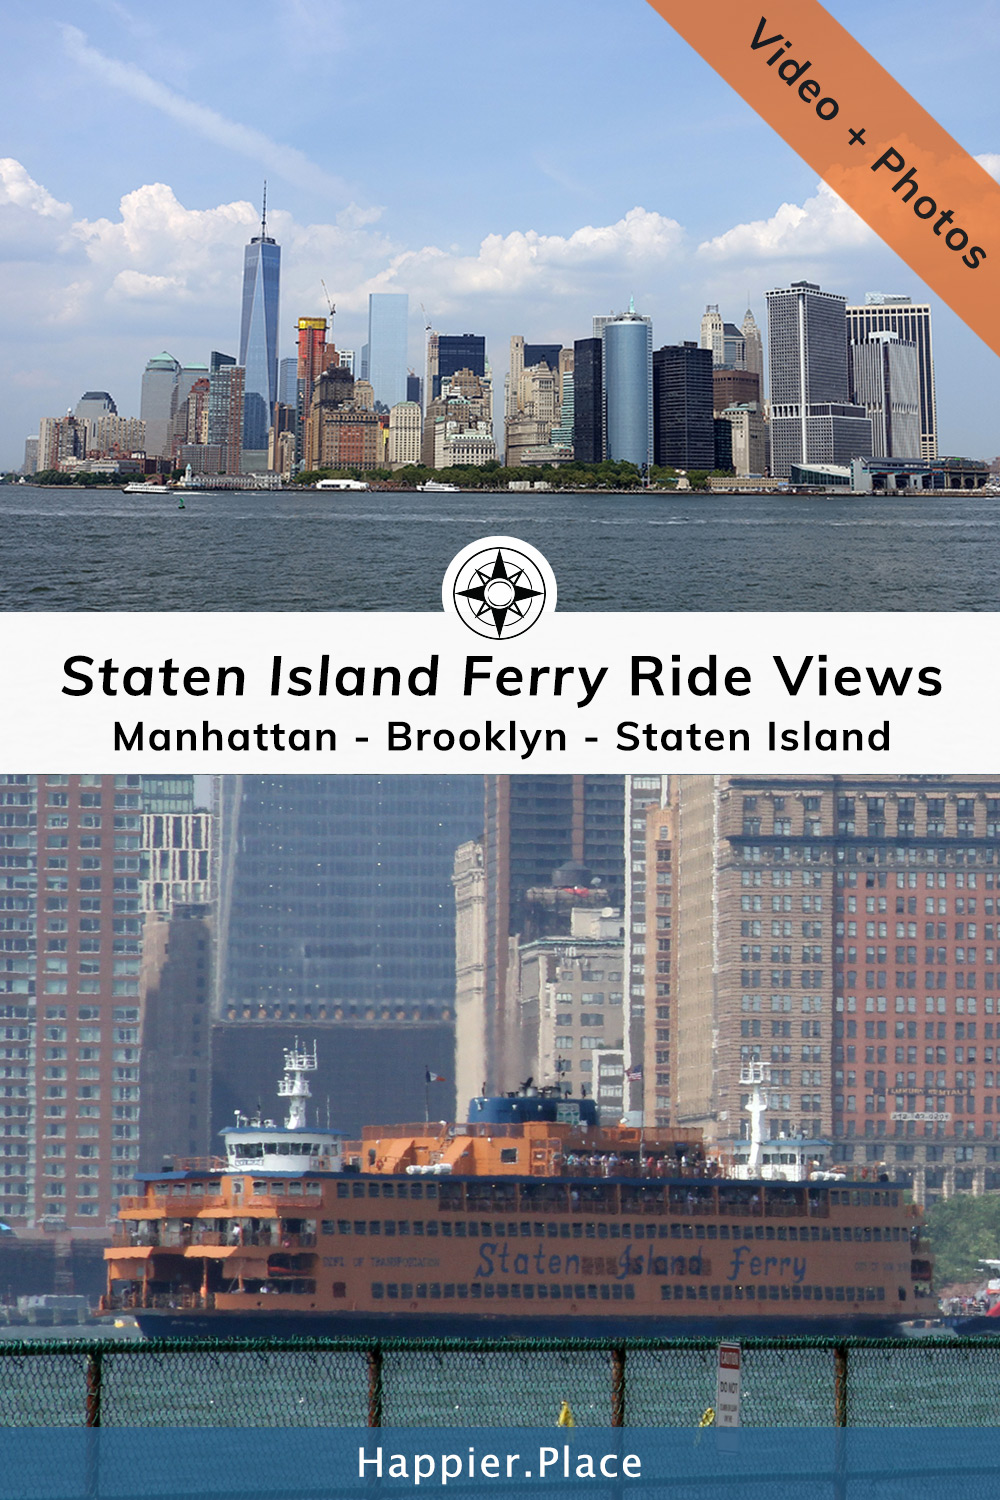 Staten Island Ferry Views from Manhattan, along Brooklyn and the Statue of Liberty to Staten Island and back. Video and photos from this moving Happier Place!